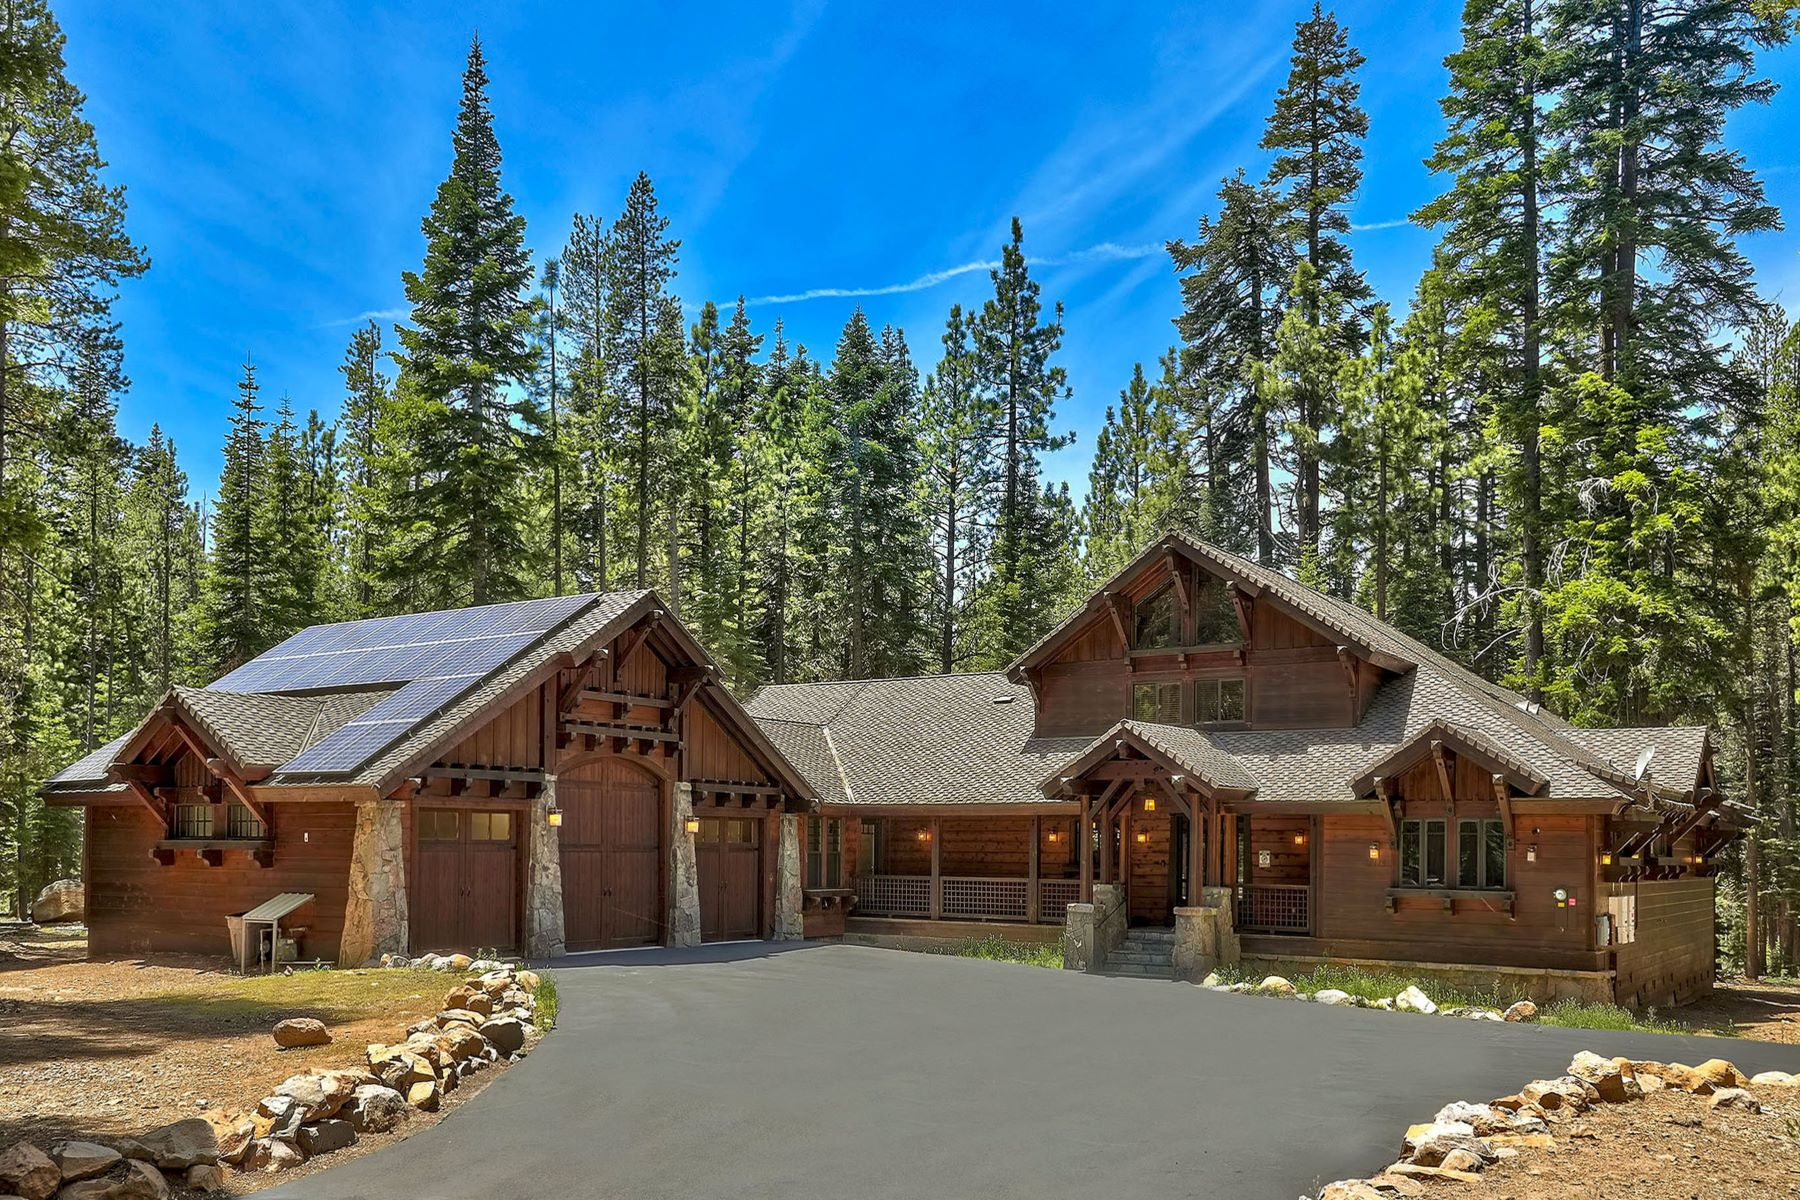 Single Family Homes for Active at 4 Bed 3 Bath Home on 10.98 Acres 12115 Oslo Drive Truckee, California 96161 United States